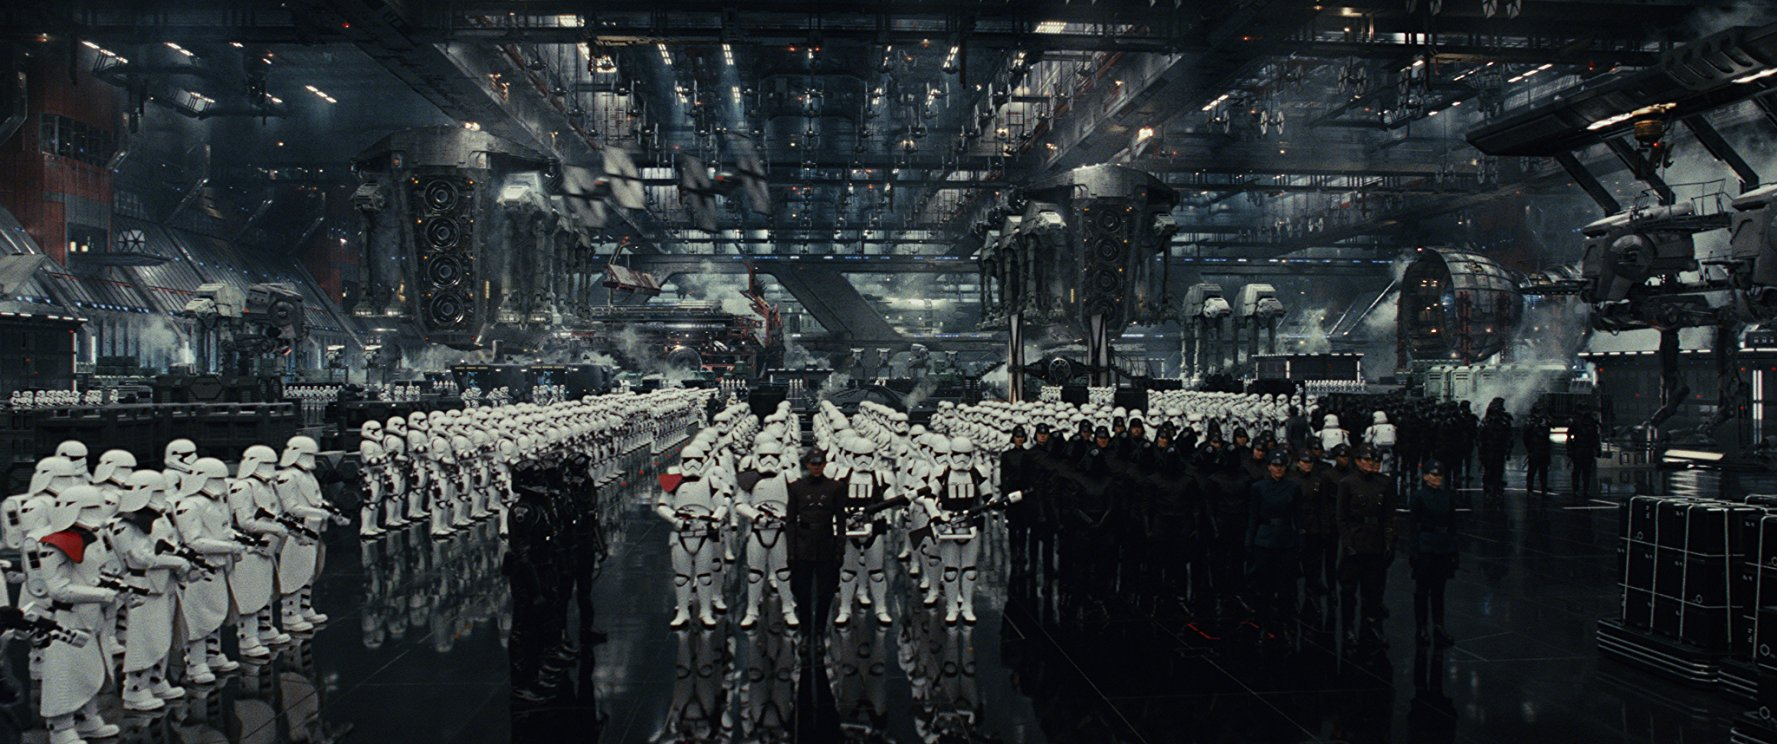 What could Rian Johnson's new Star Wars trilogy focus on?